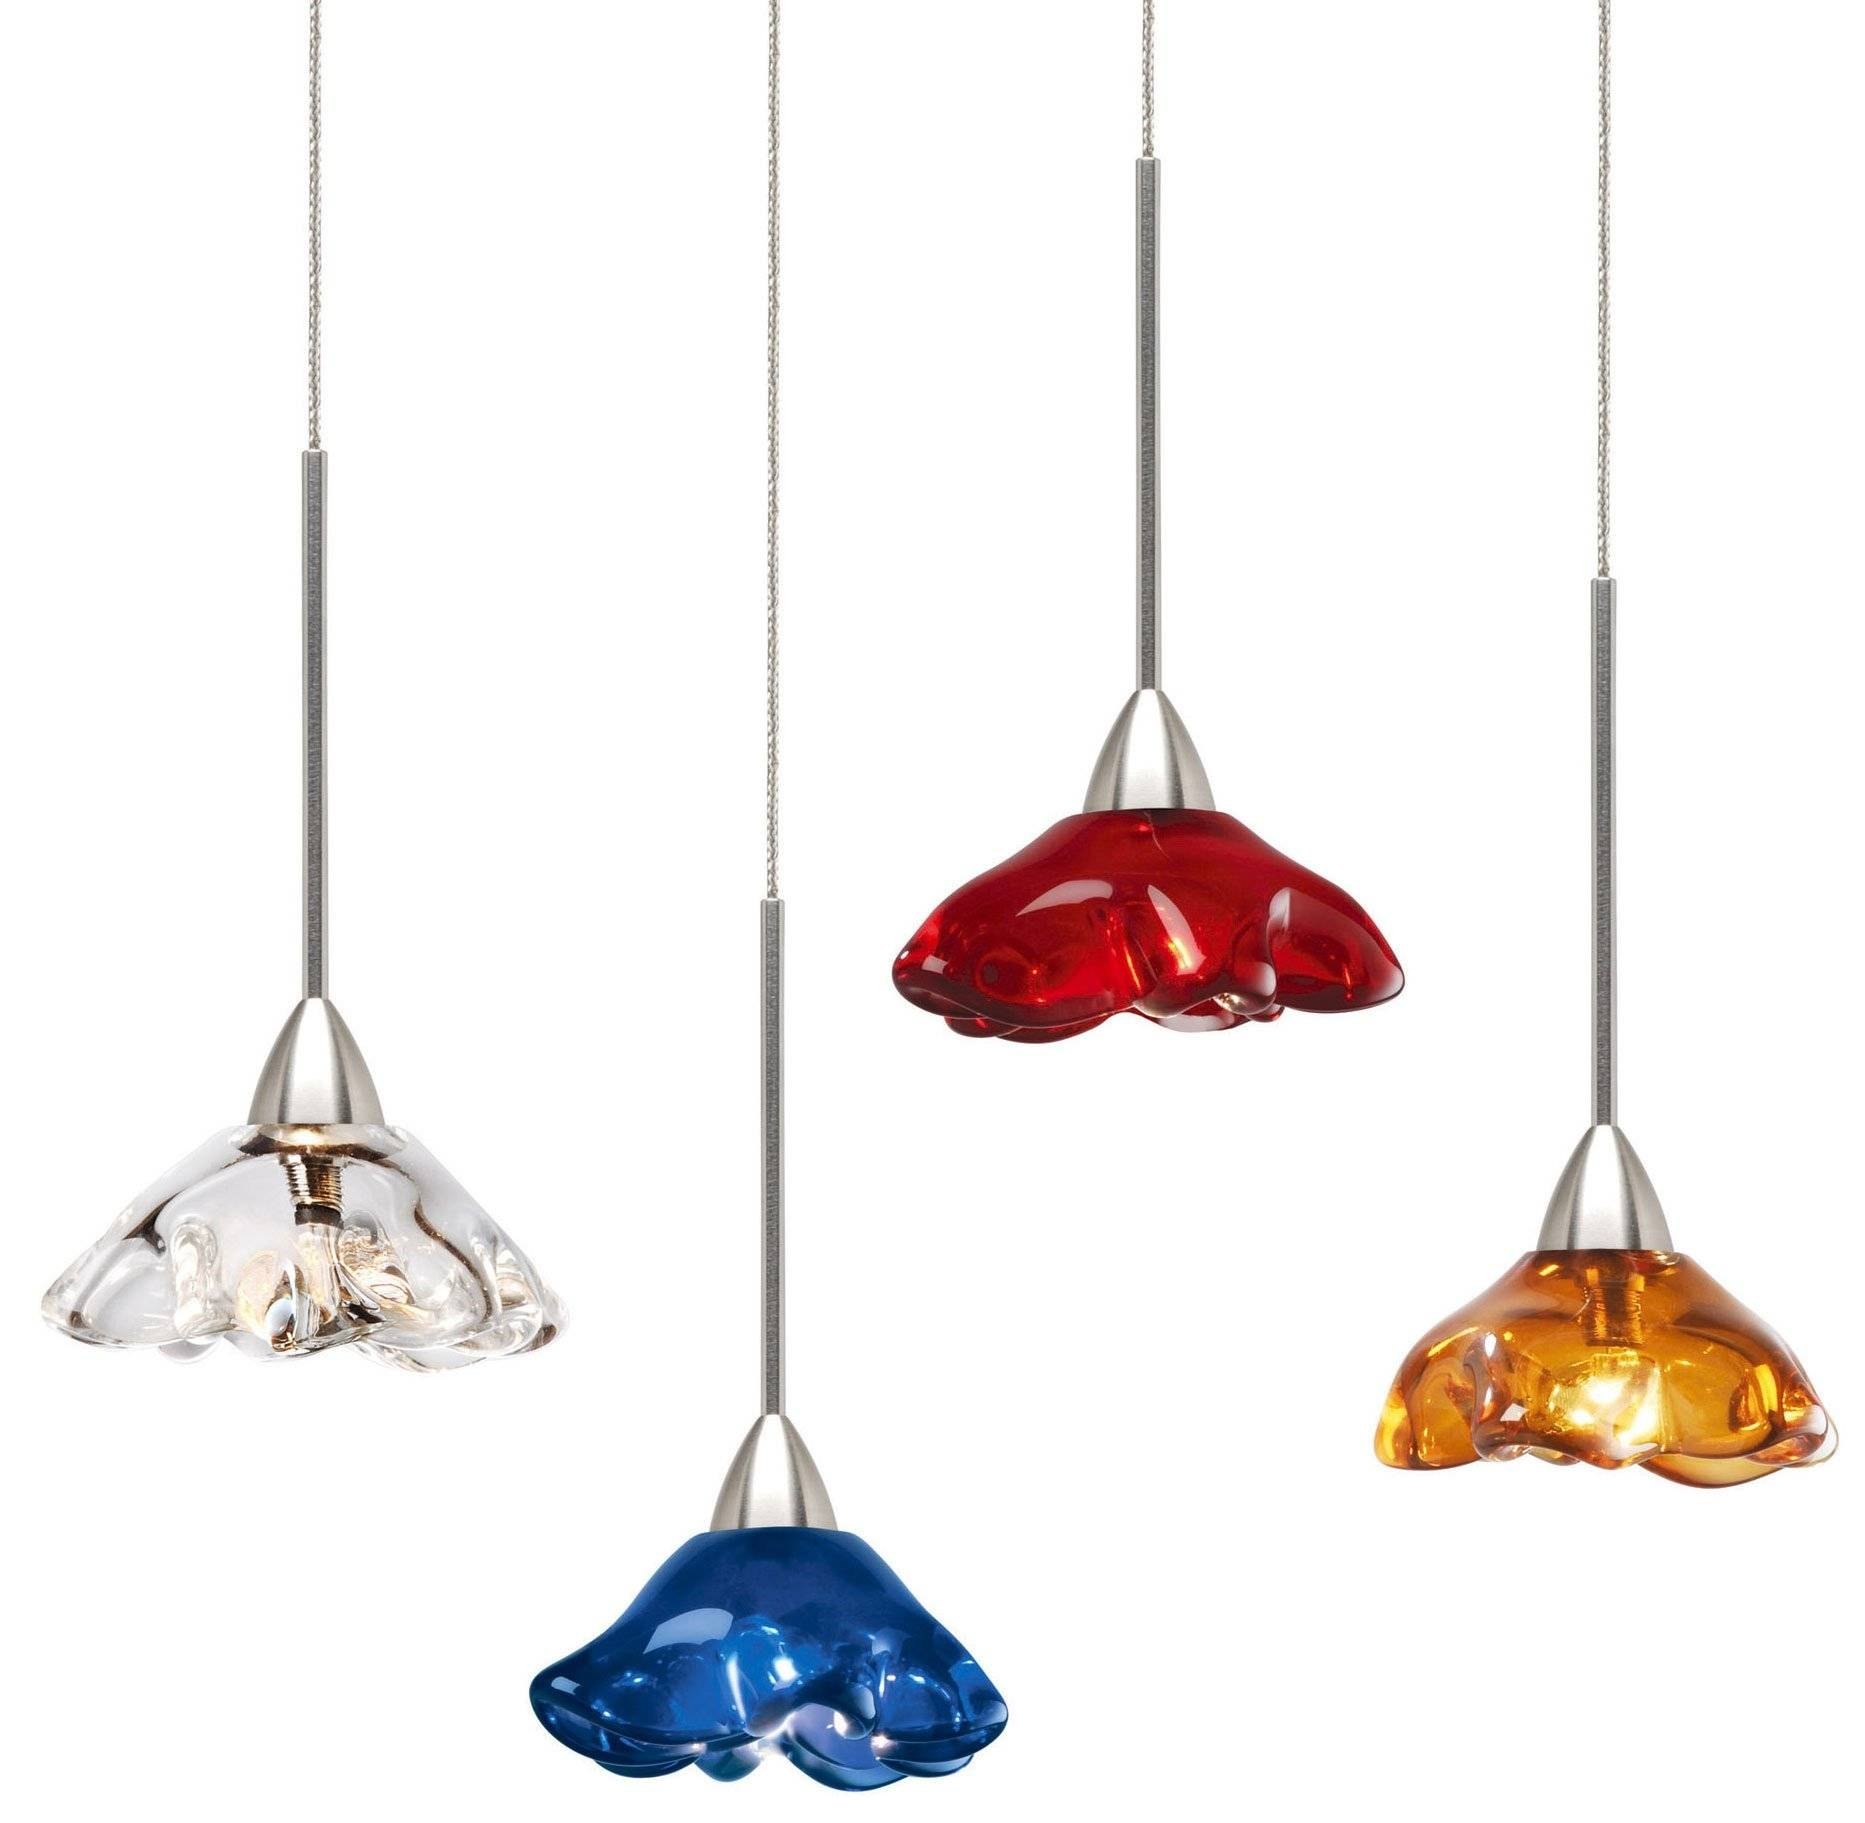 Stone Lighting Pd158 Poppy Modern / Contemporary Mini Pendant pertaining to Contemporary Pendant Lights Australia (Image 14 of 15)